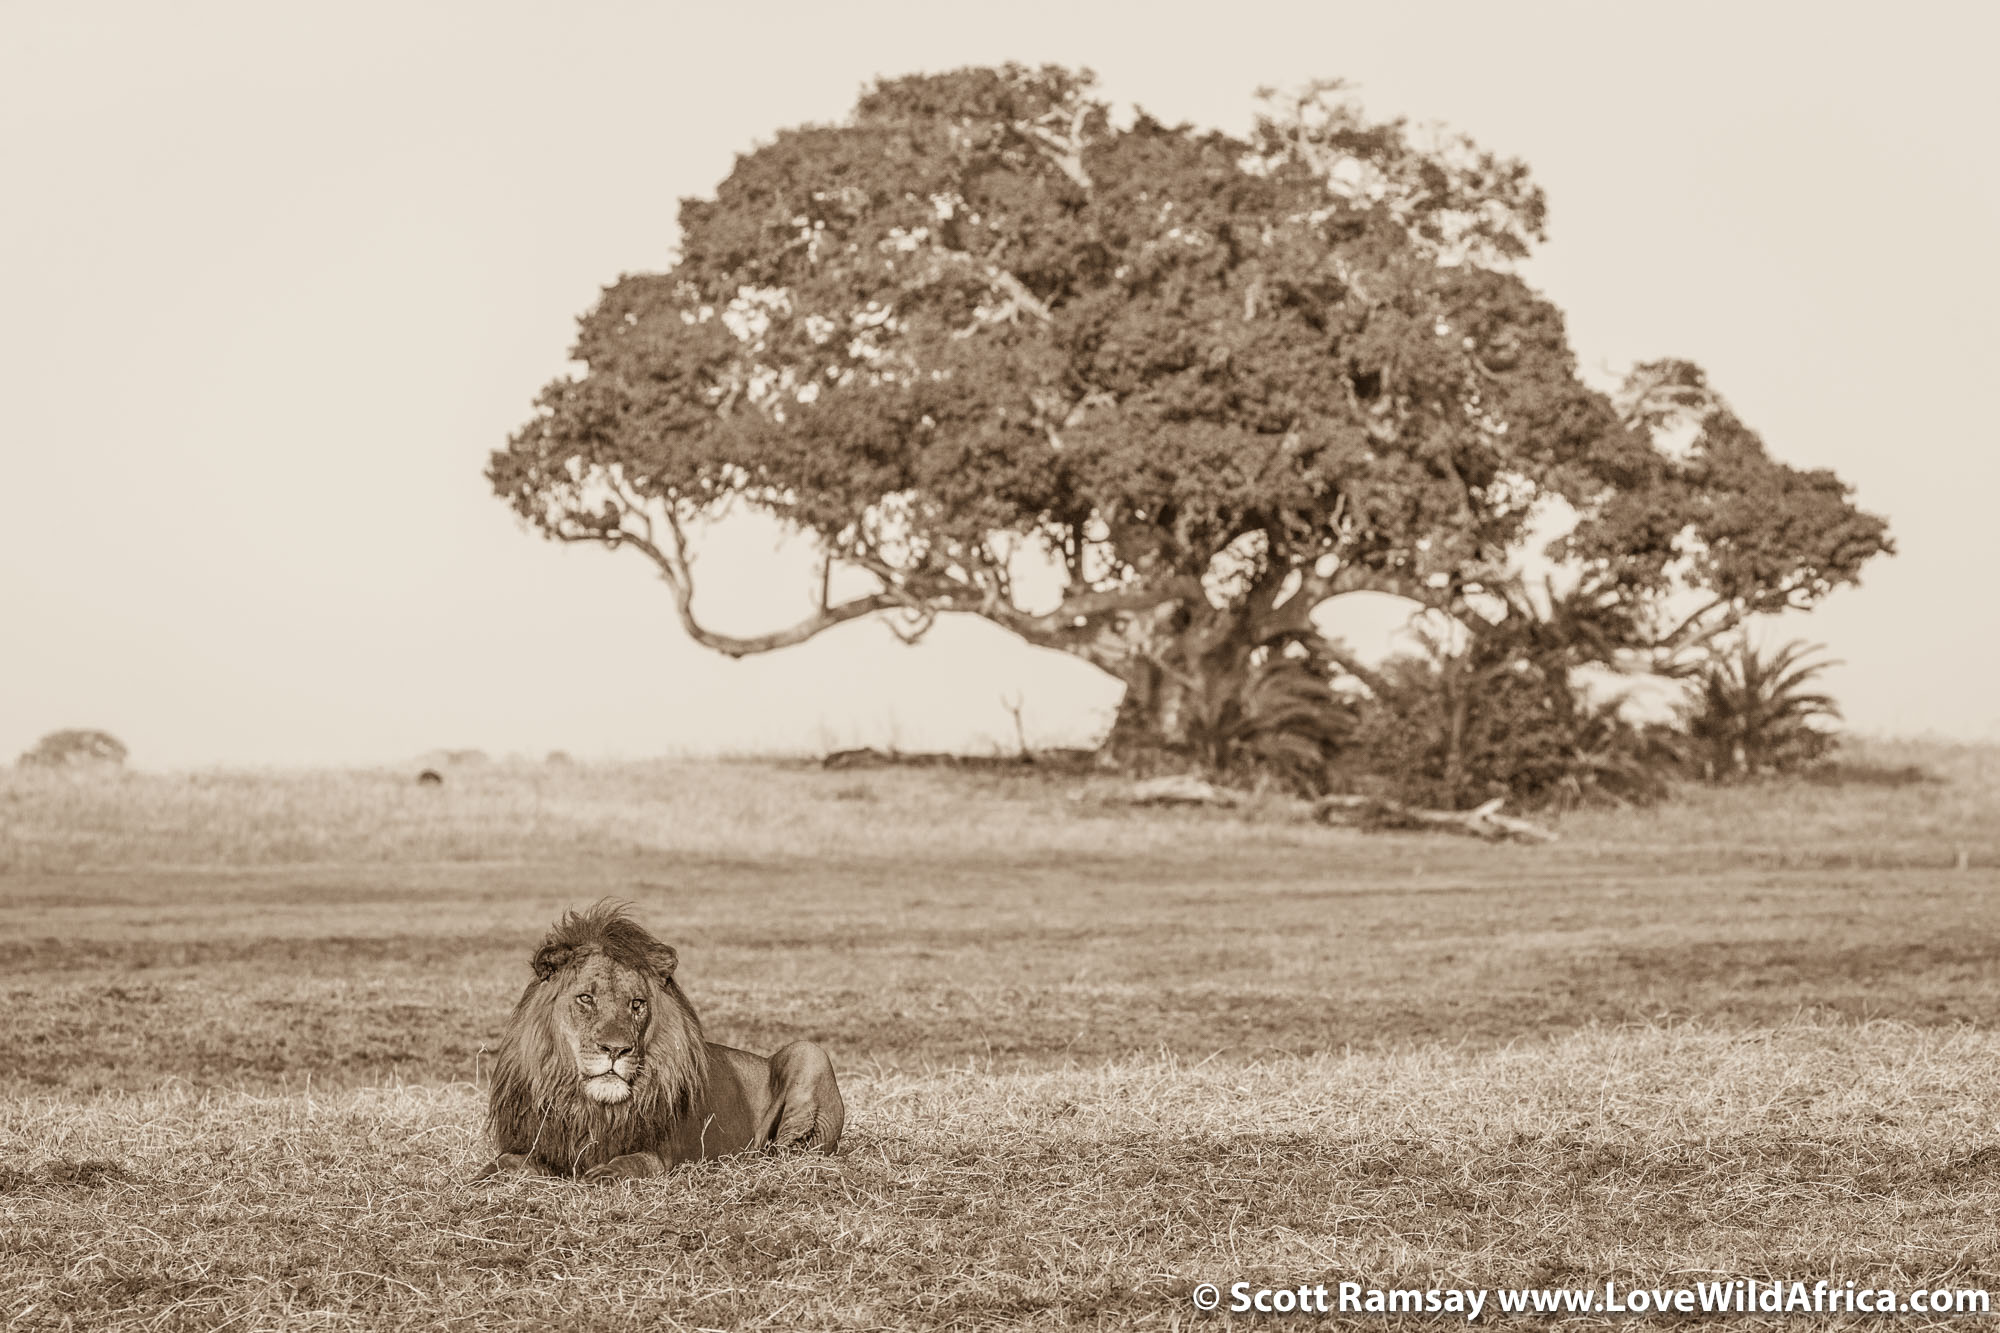 Male lion on the plains in front of a huge sycamore fig tree.